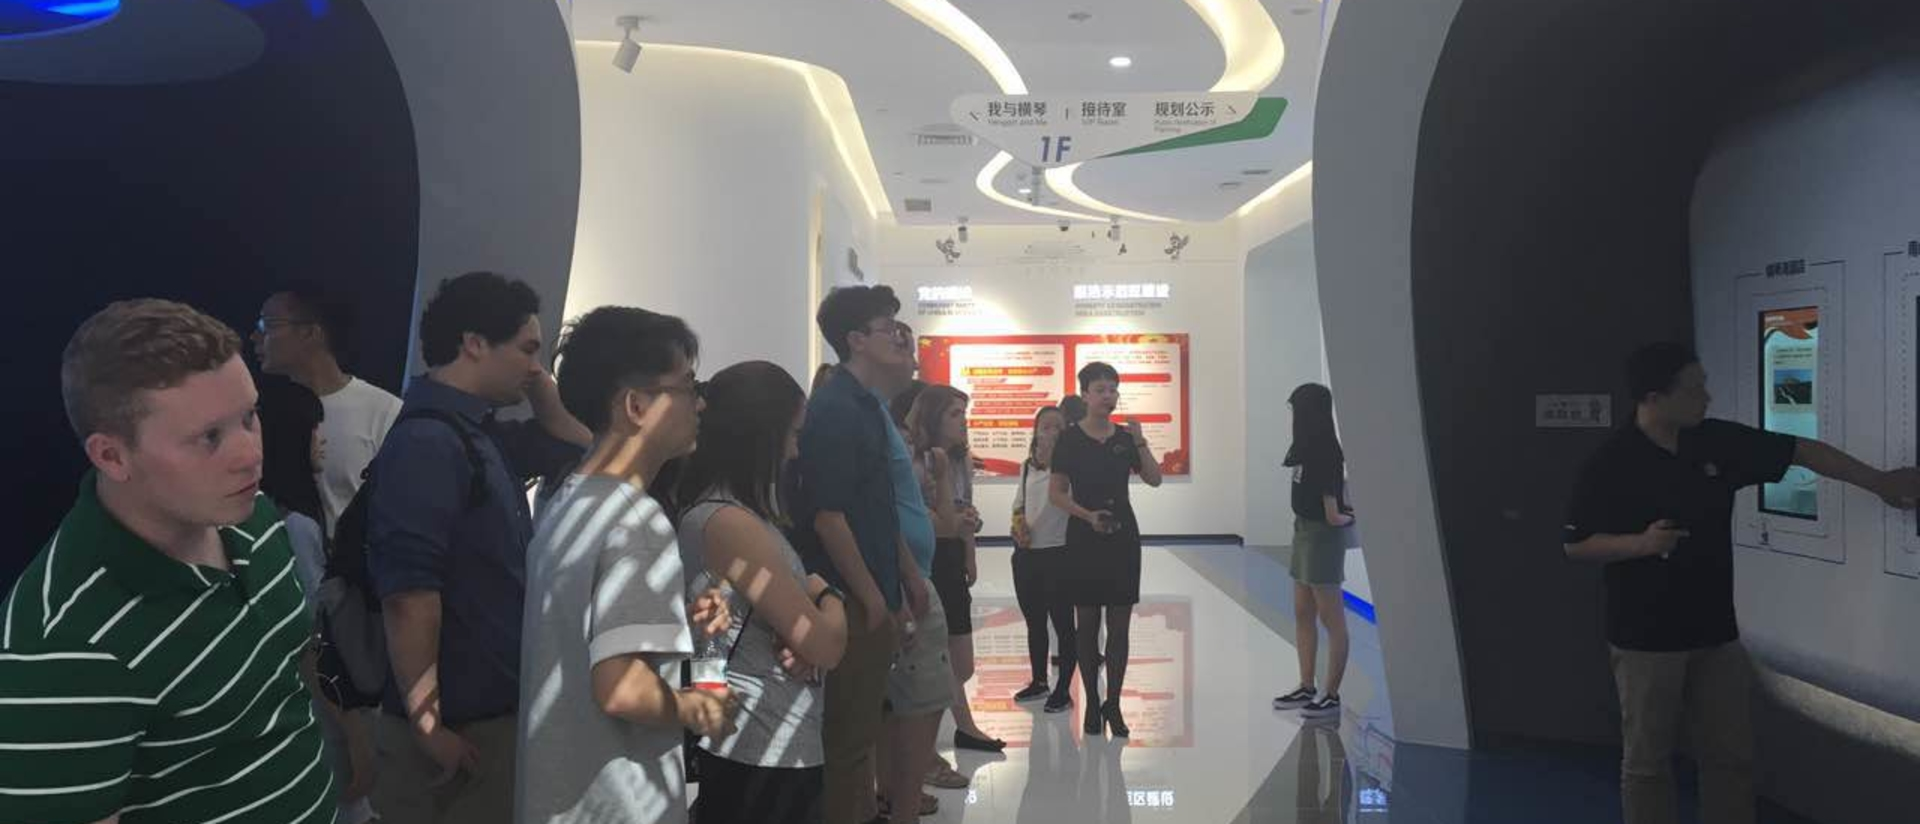 Business students touring Chinese business